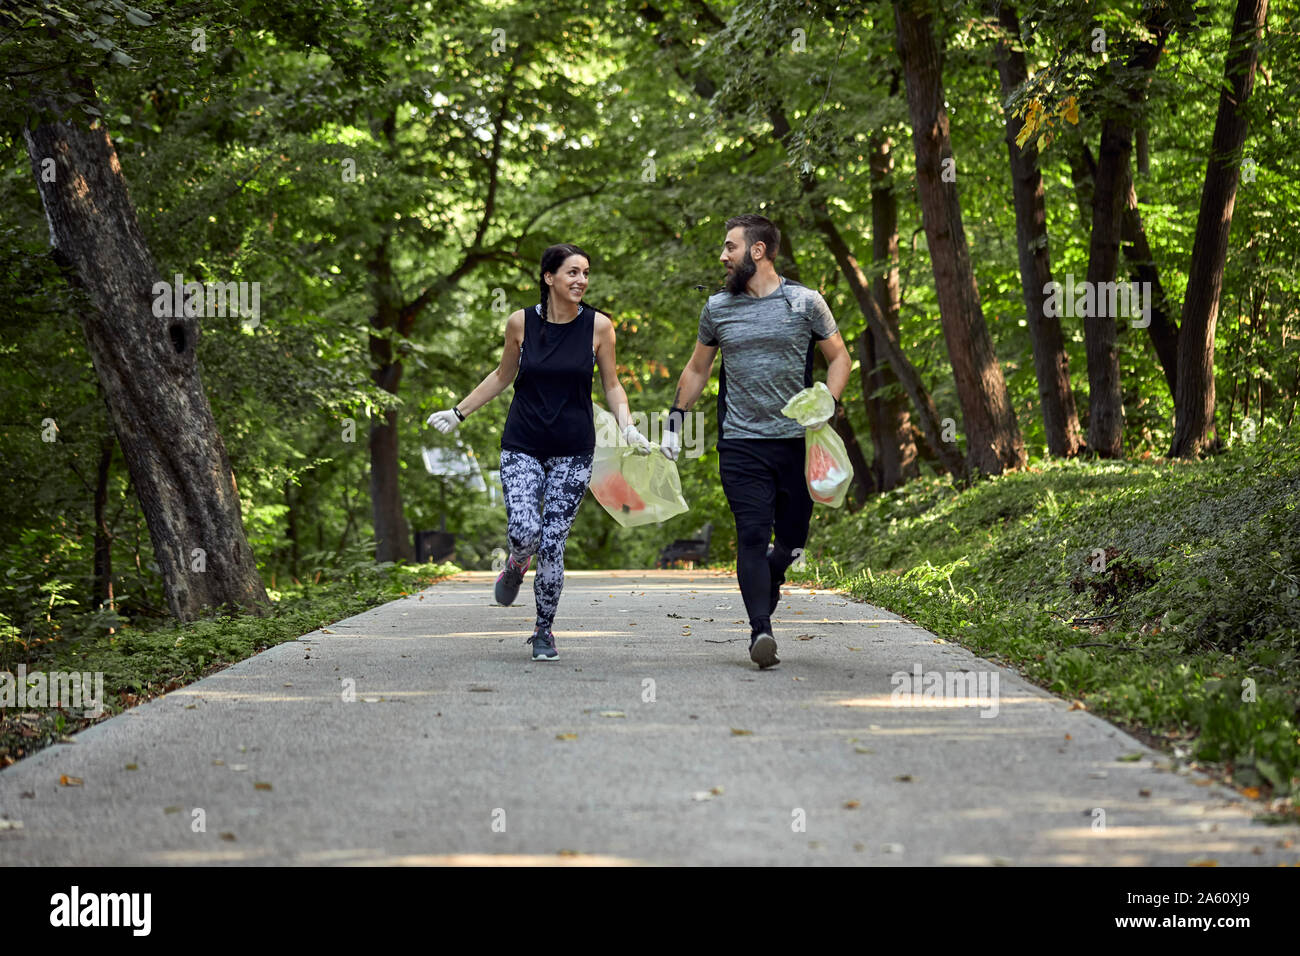 Couple plogging on forest path Stock Photo